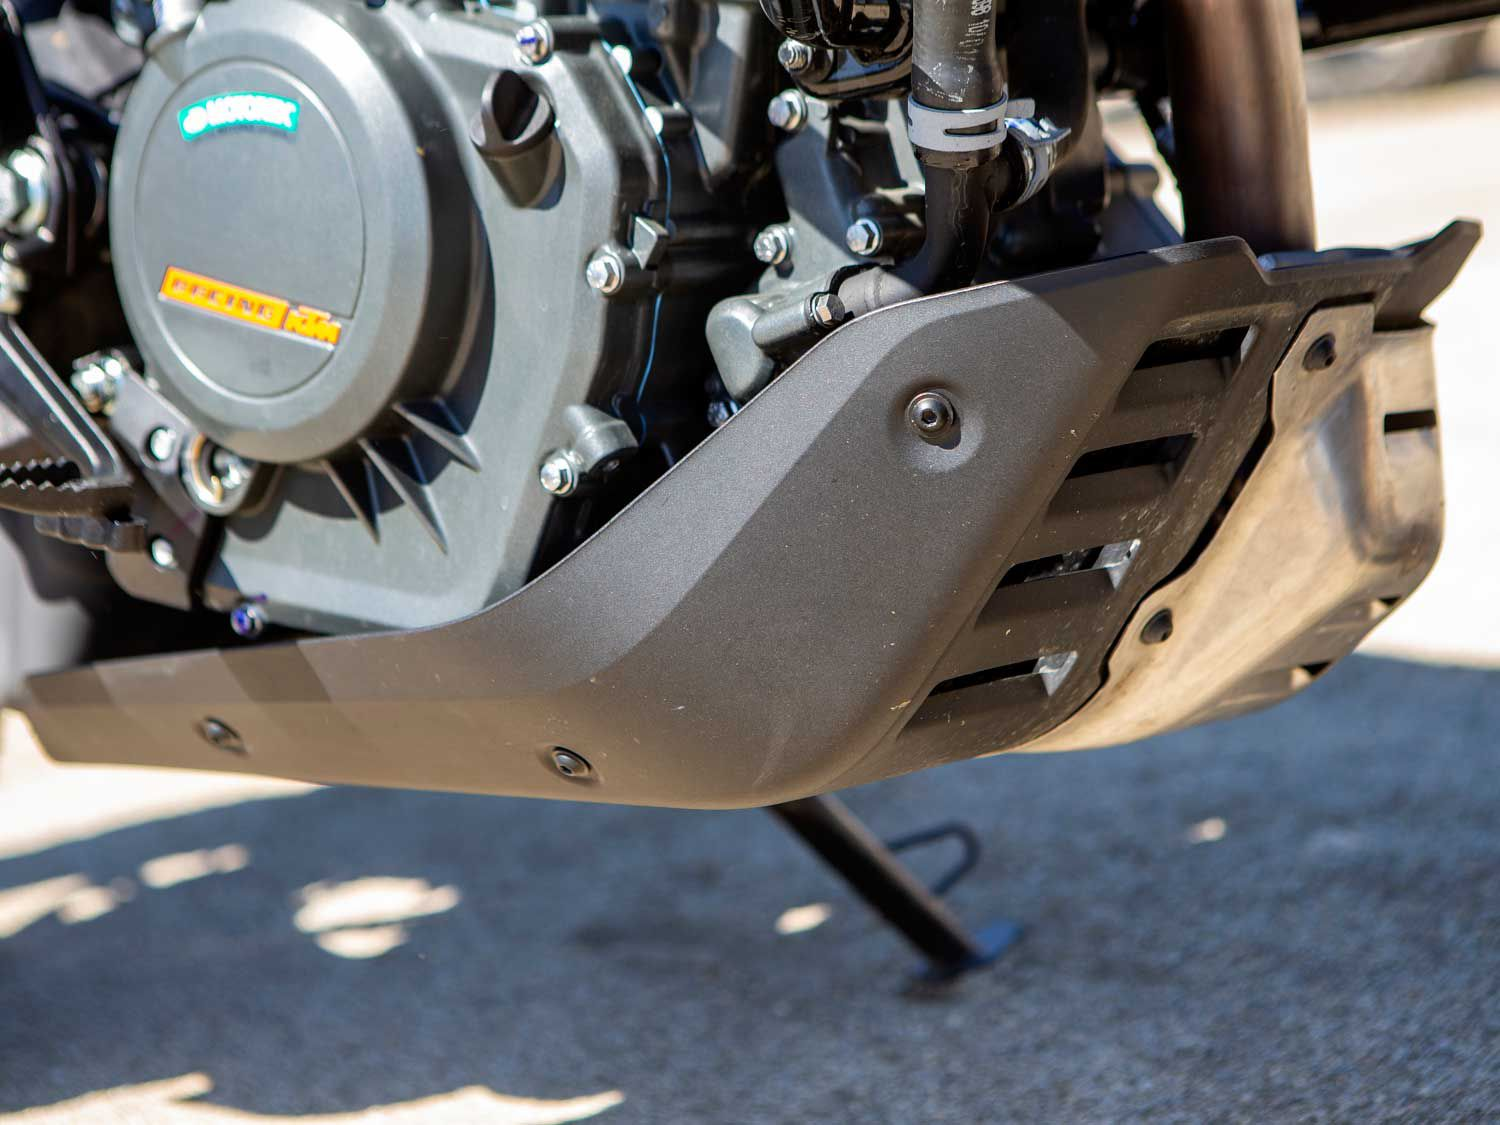 KTM's 390 Adventure comes with basic engine protection. Crashbars and hand guards are also standard.